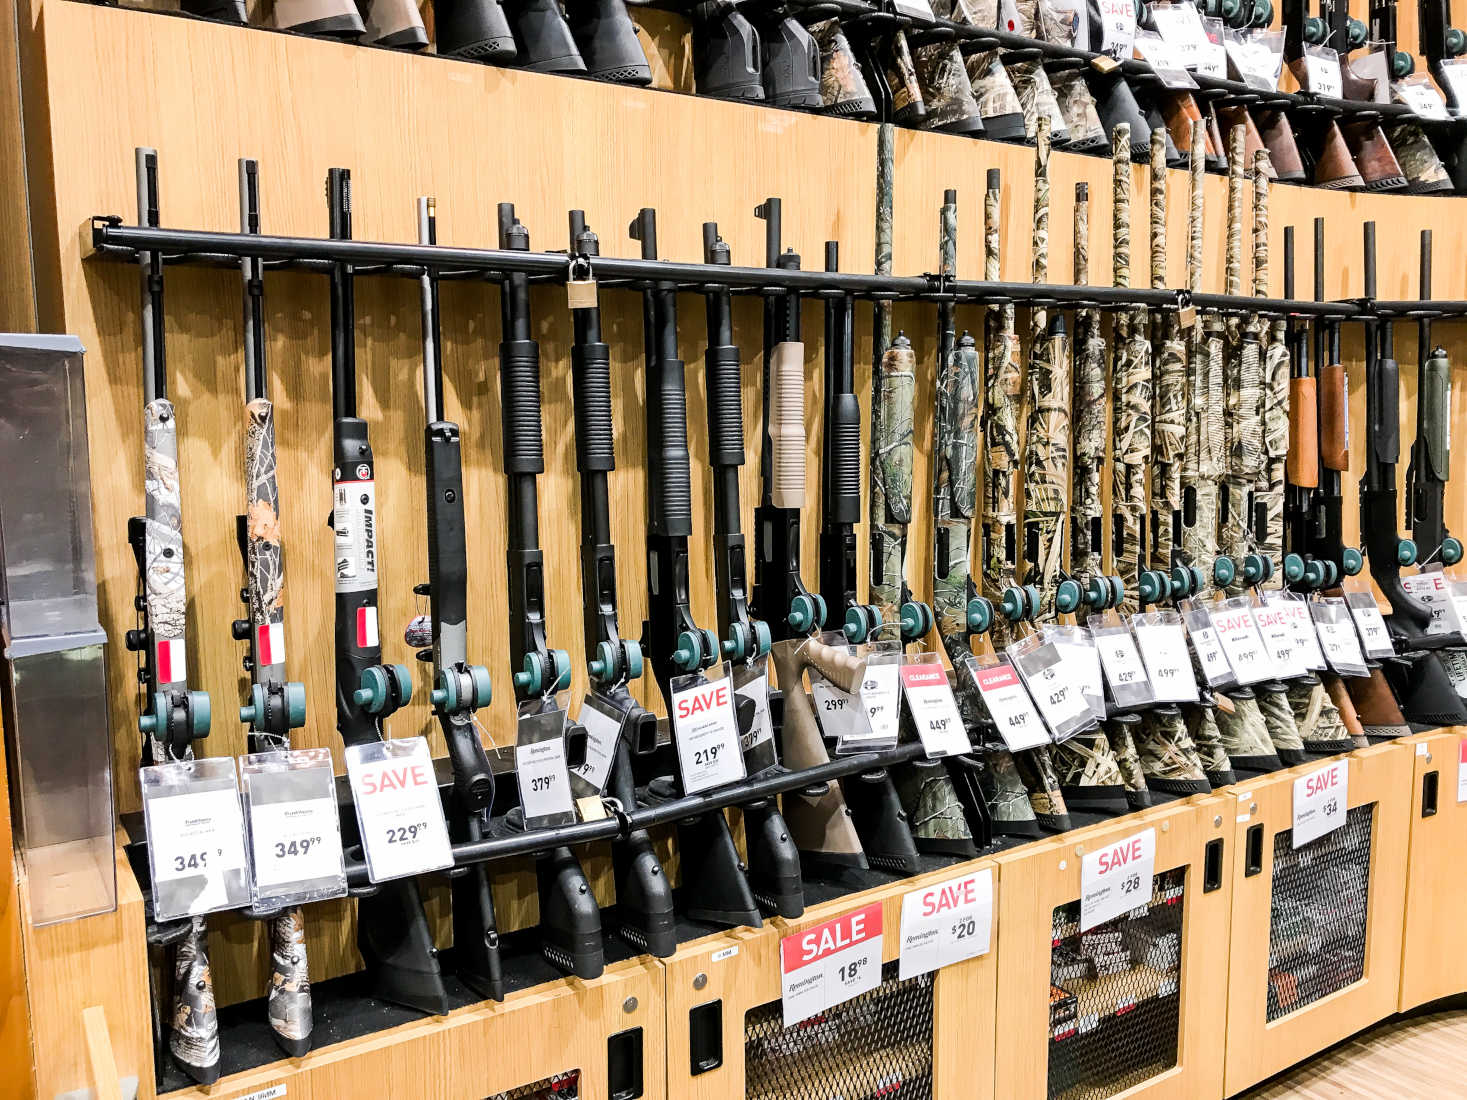 Alabama Republican Wants to Create Voluntary 'Do Not Sell' List for Guns